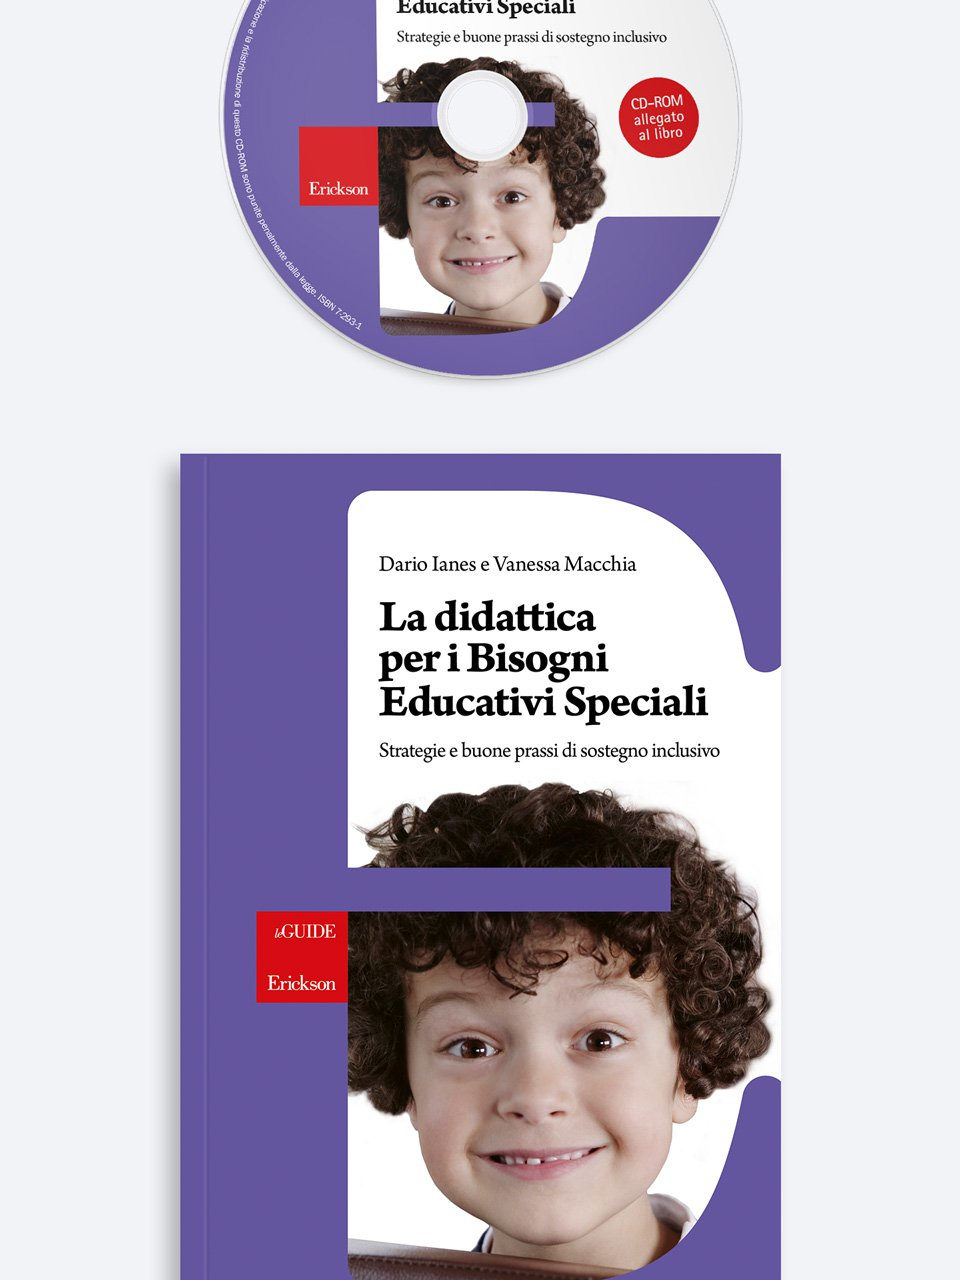 La didattica per i Bisogni Educativi Speciali - Universal Design for Learning - Libri - Erickson